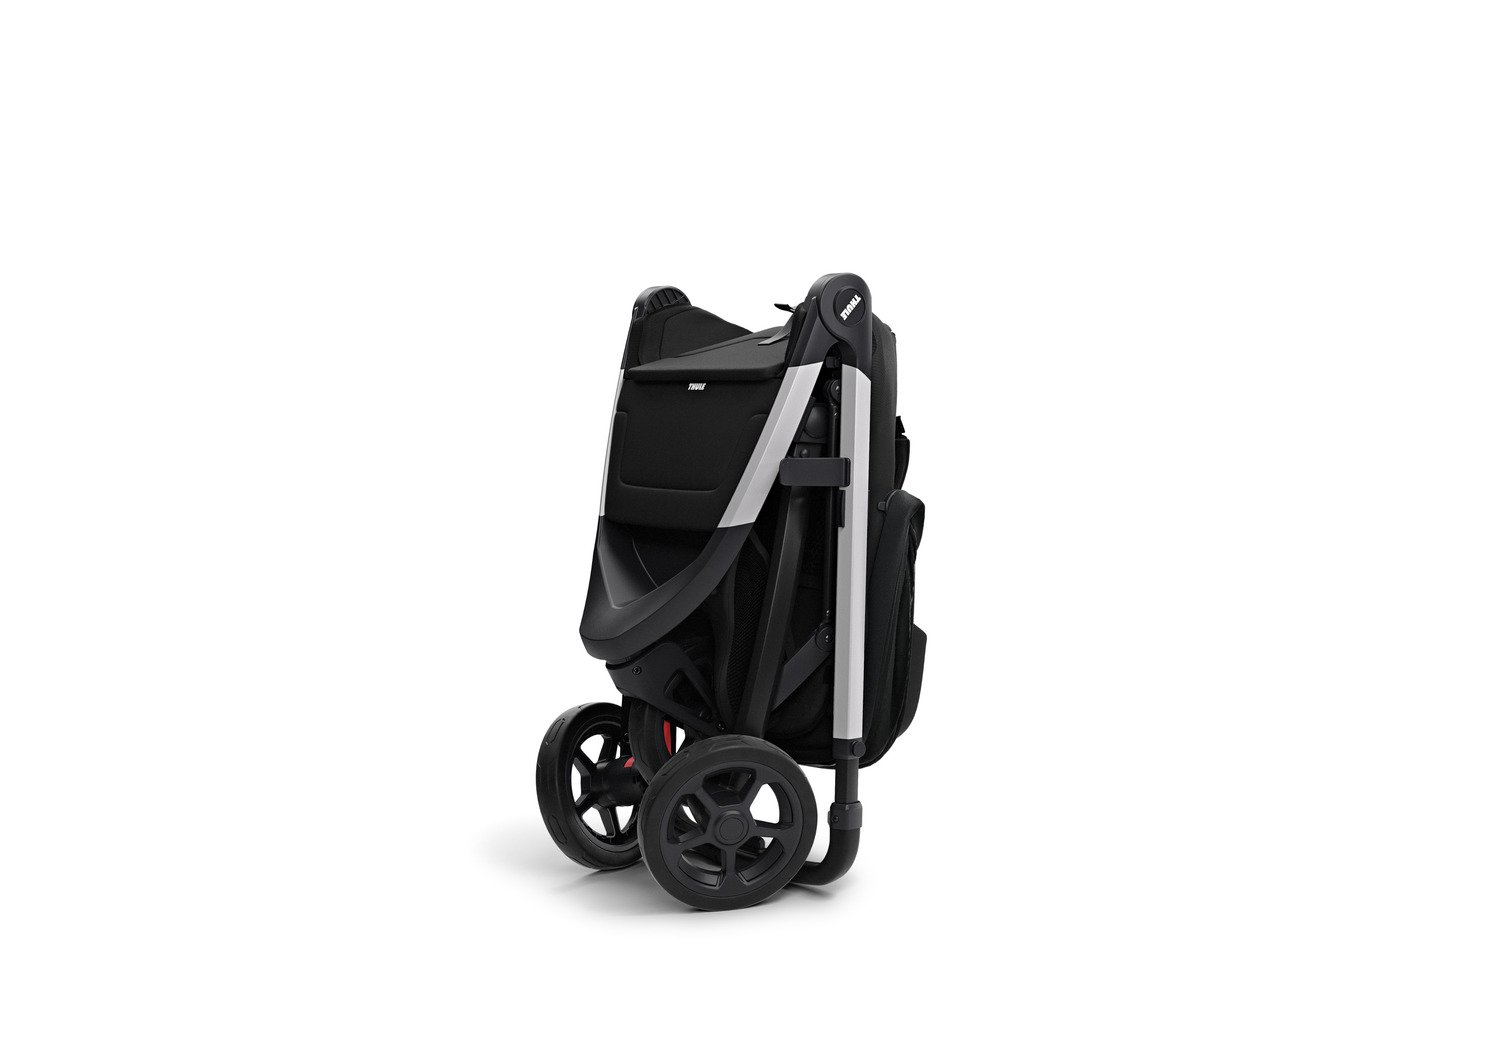 Wózek spacerowy Thule Spring Aluminium Midnight Black